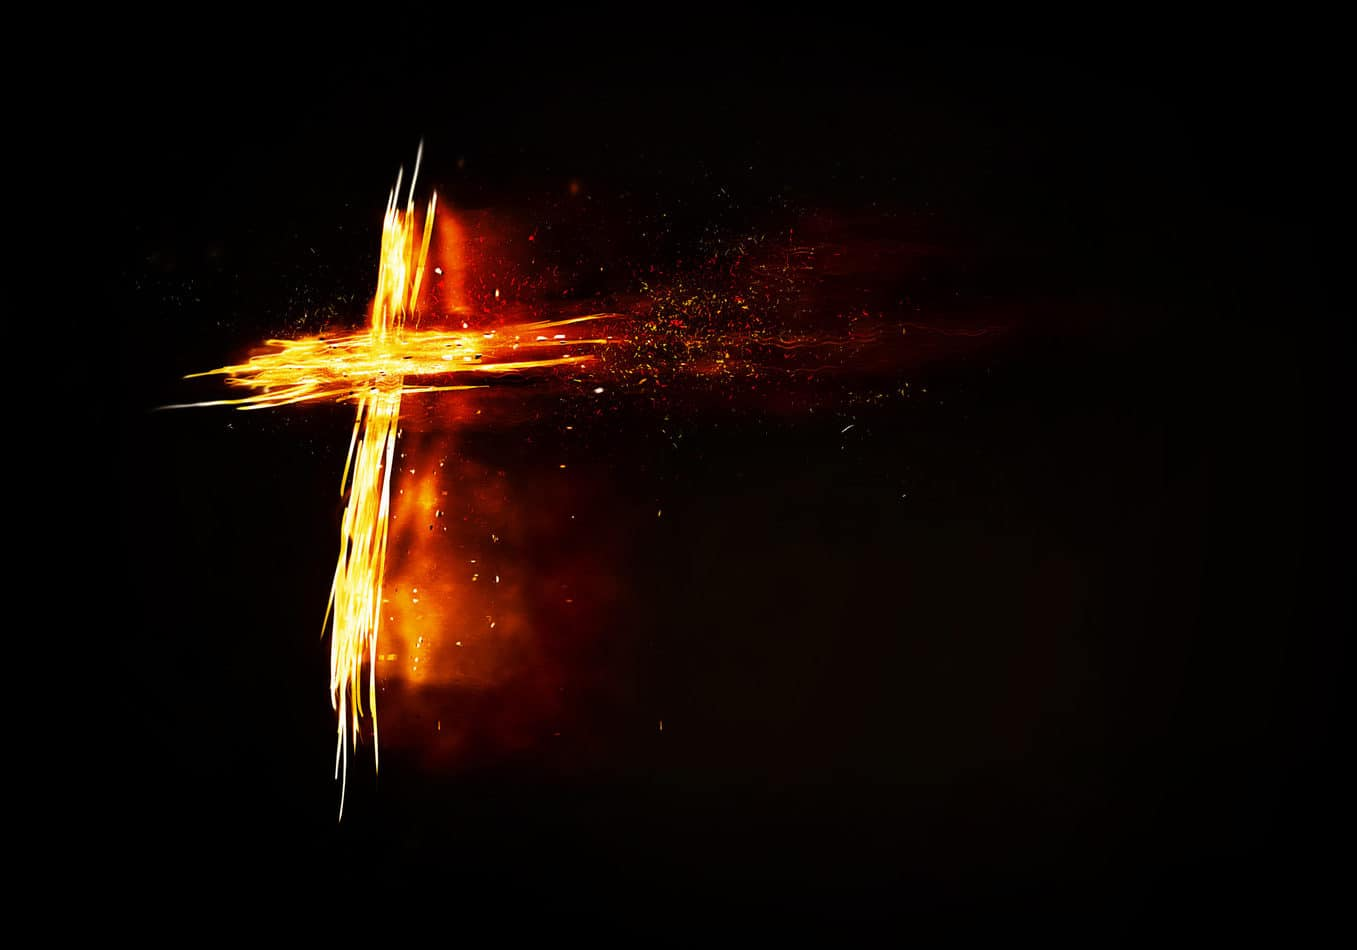 A glowing and burning cross on a black background